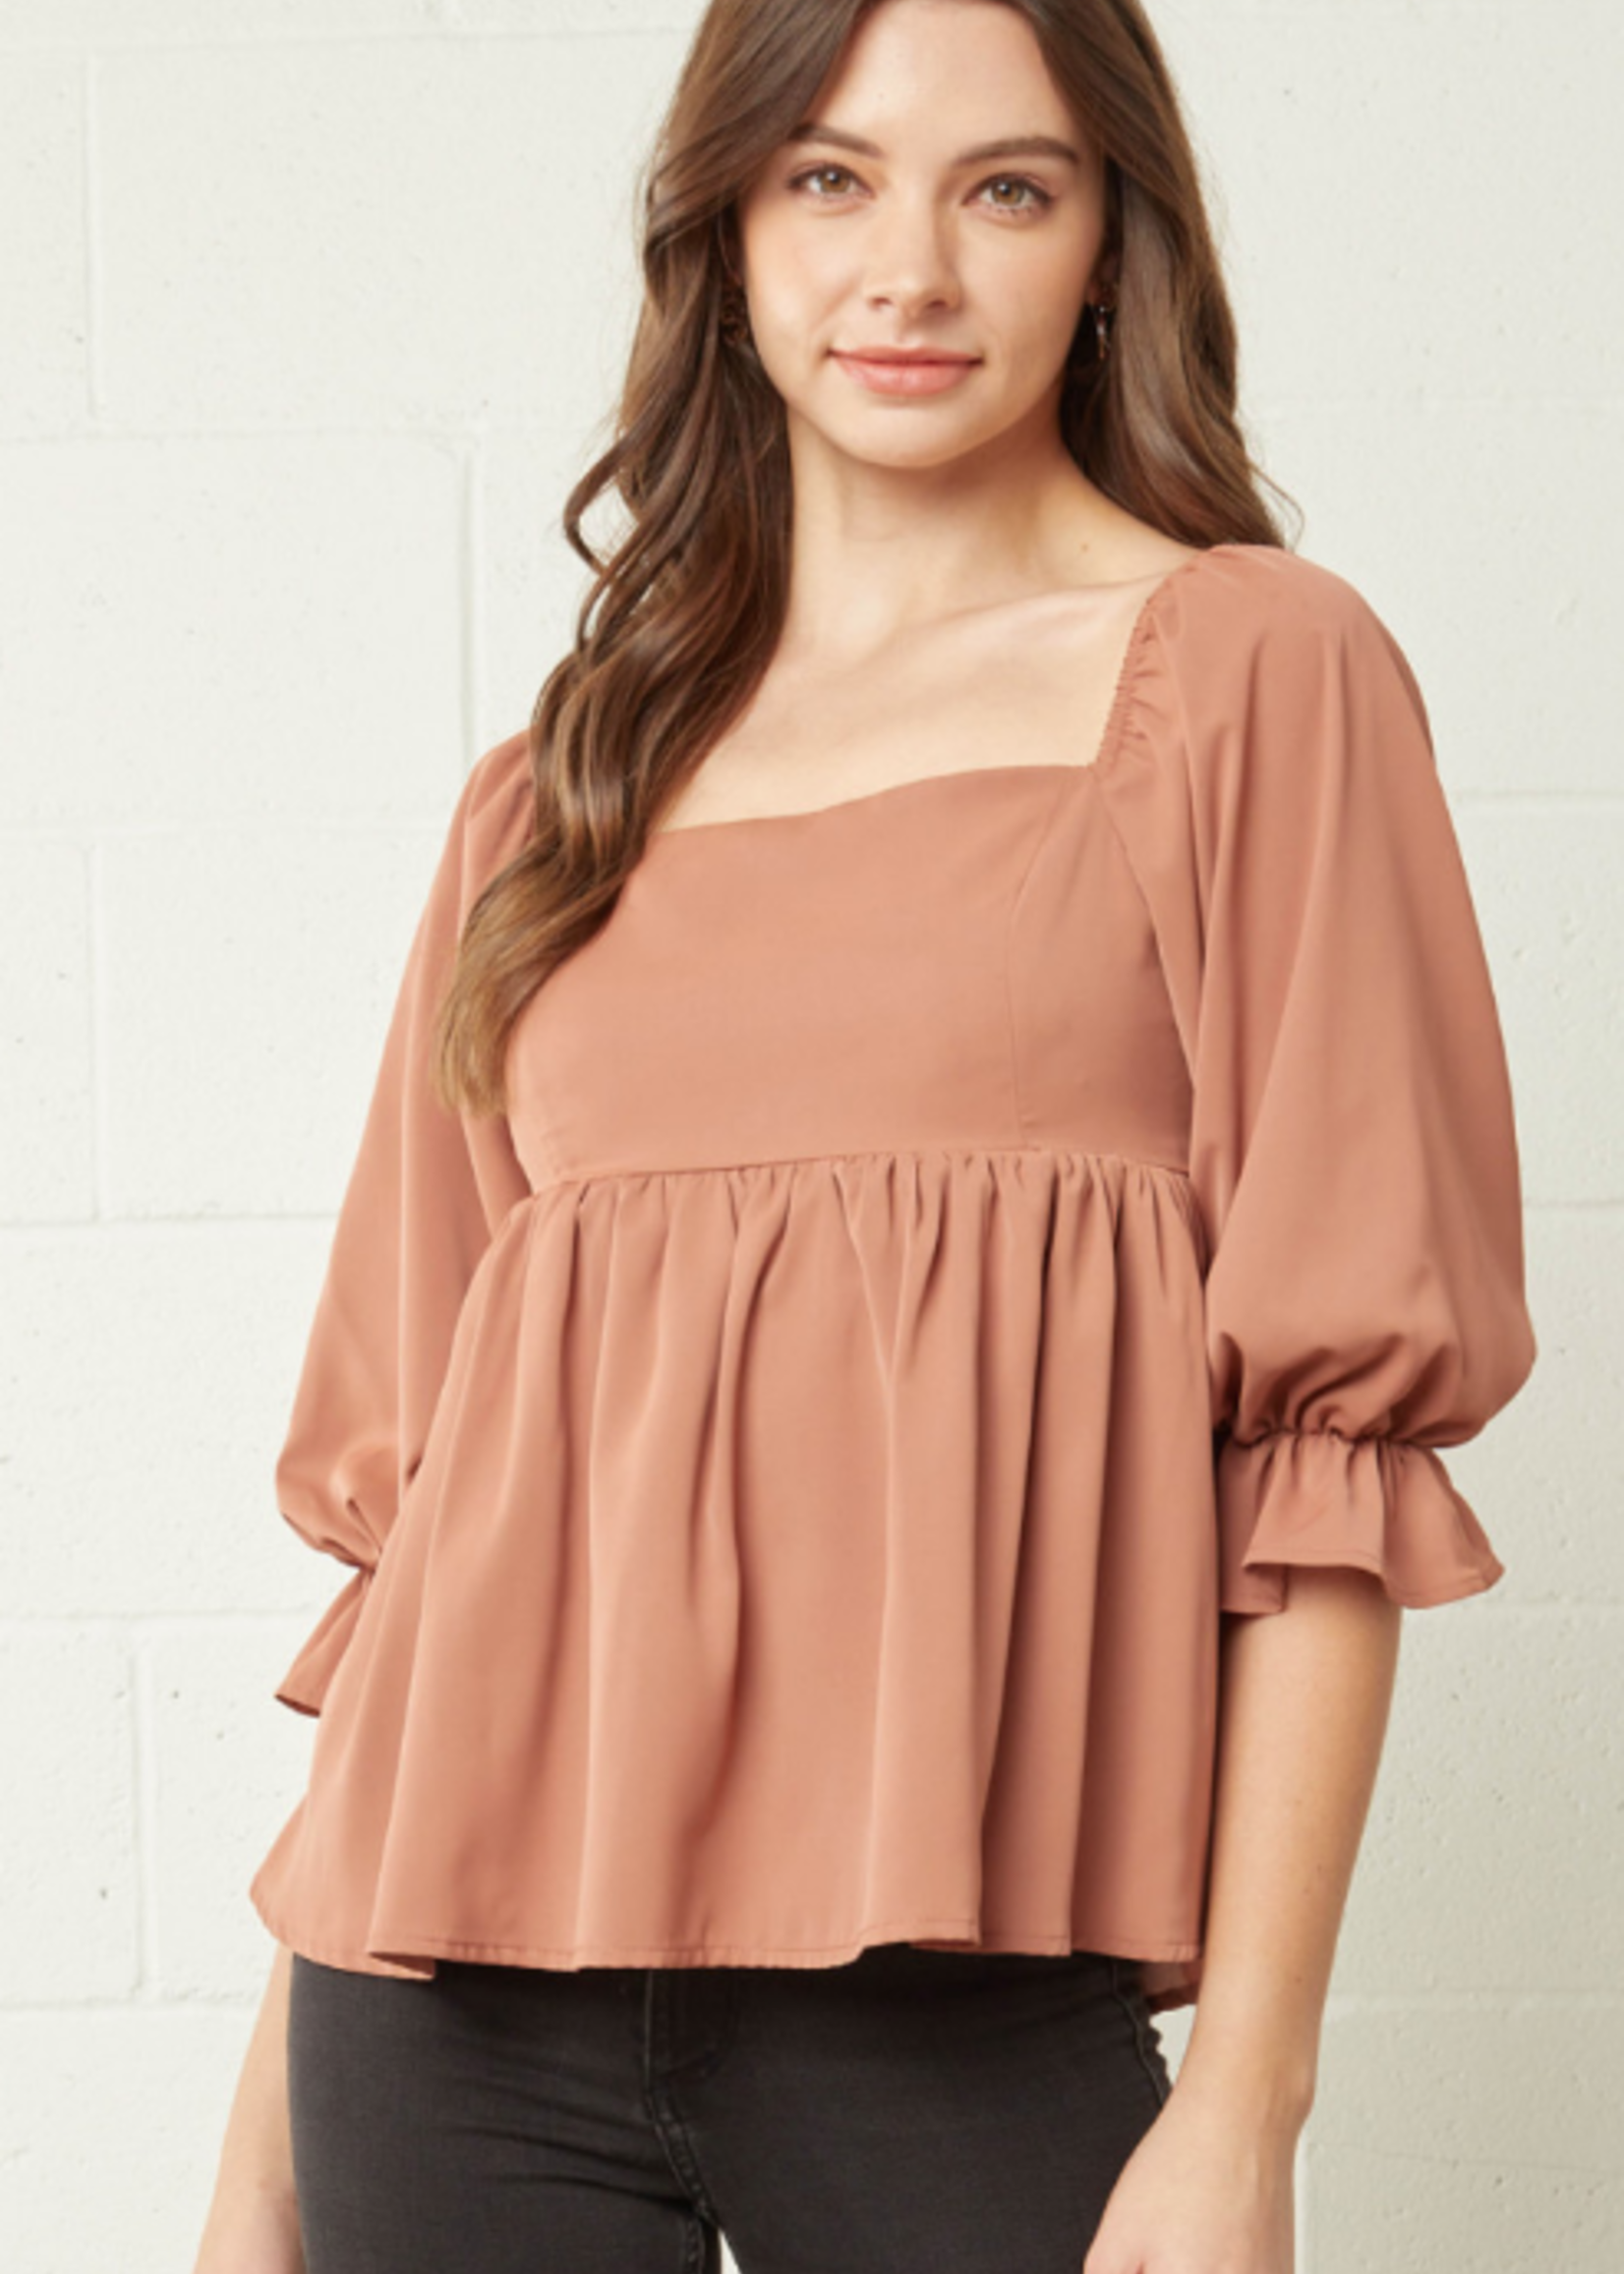 Best Days Baby Doll Top (2 Colors)